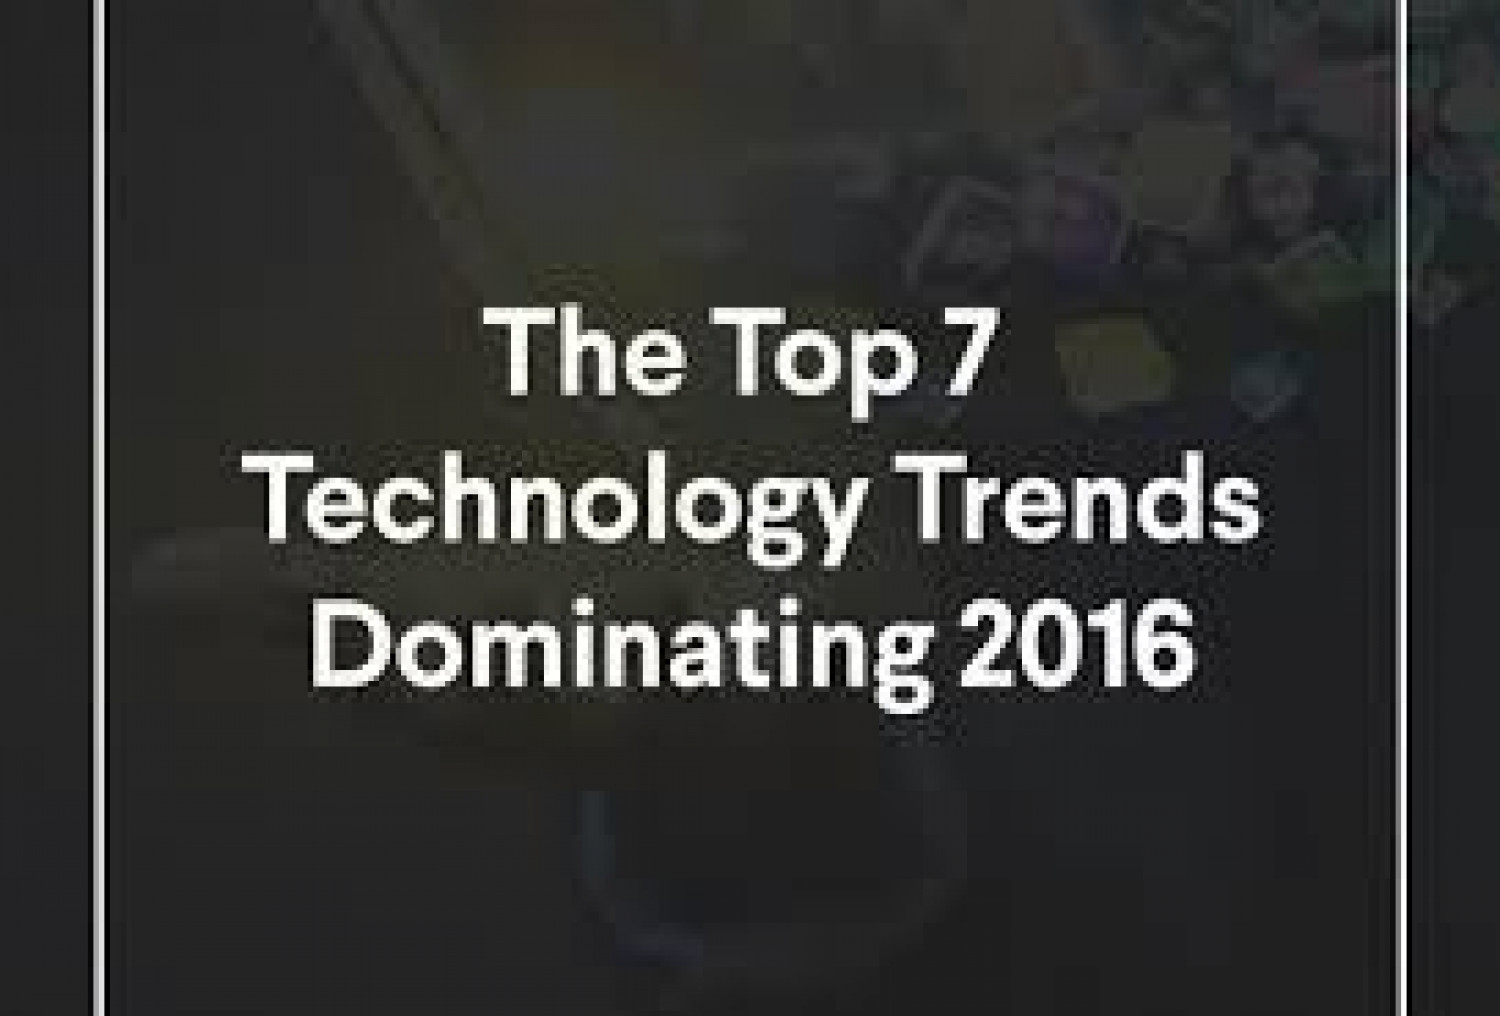 The Top 7 Technology Trends Dominating 2016 Infographic